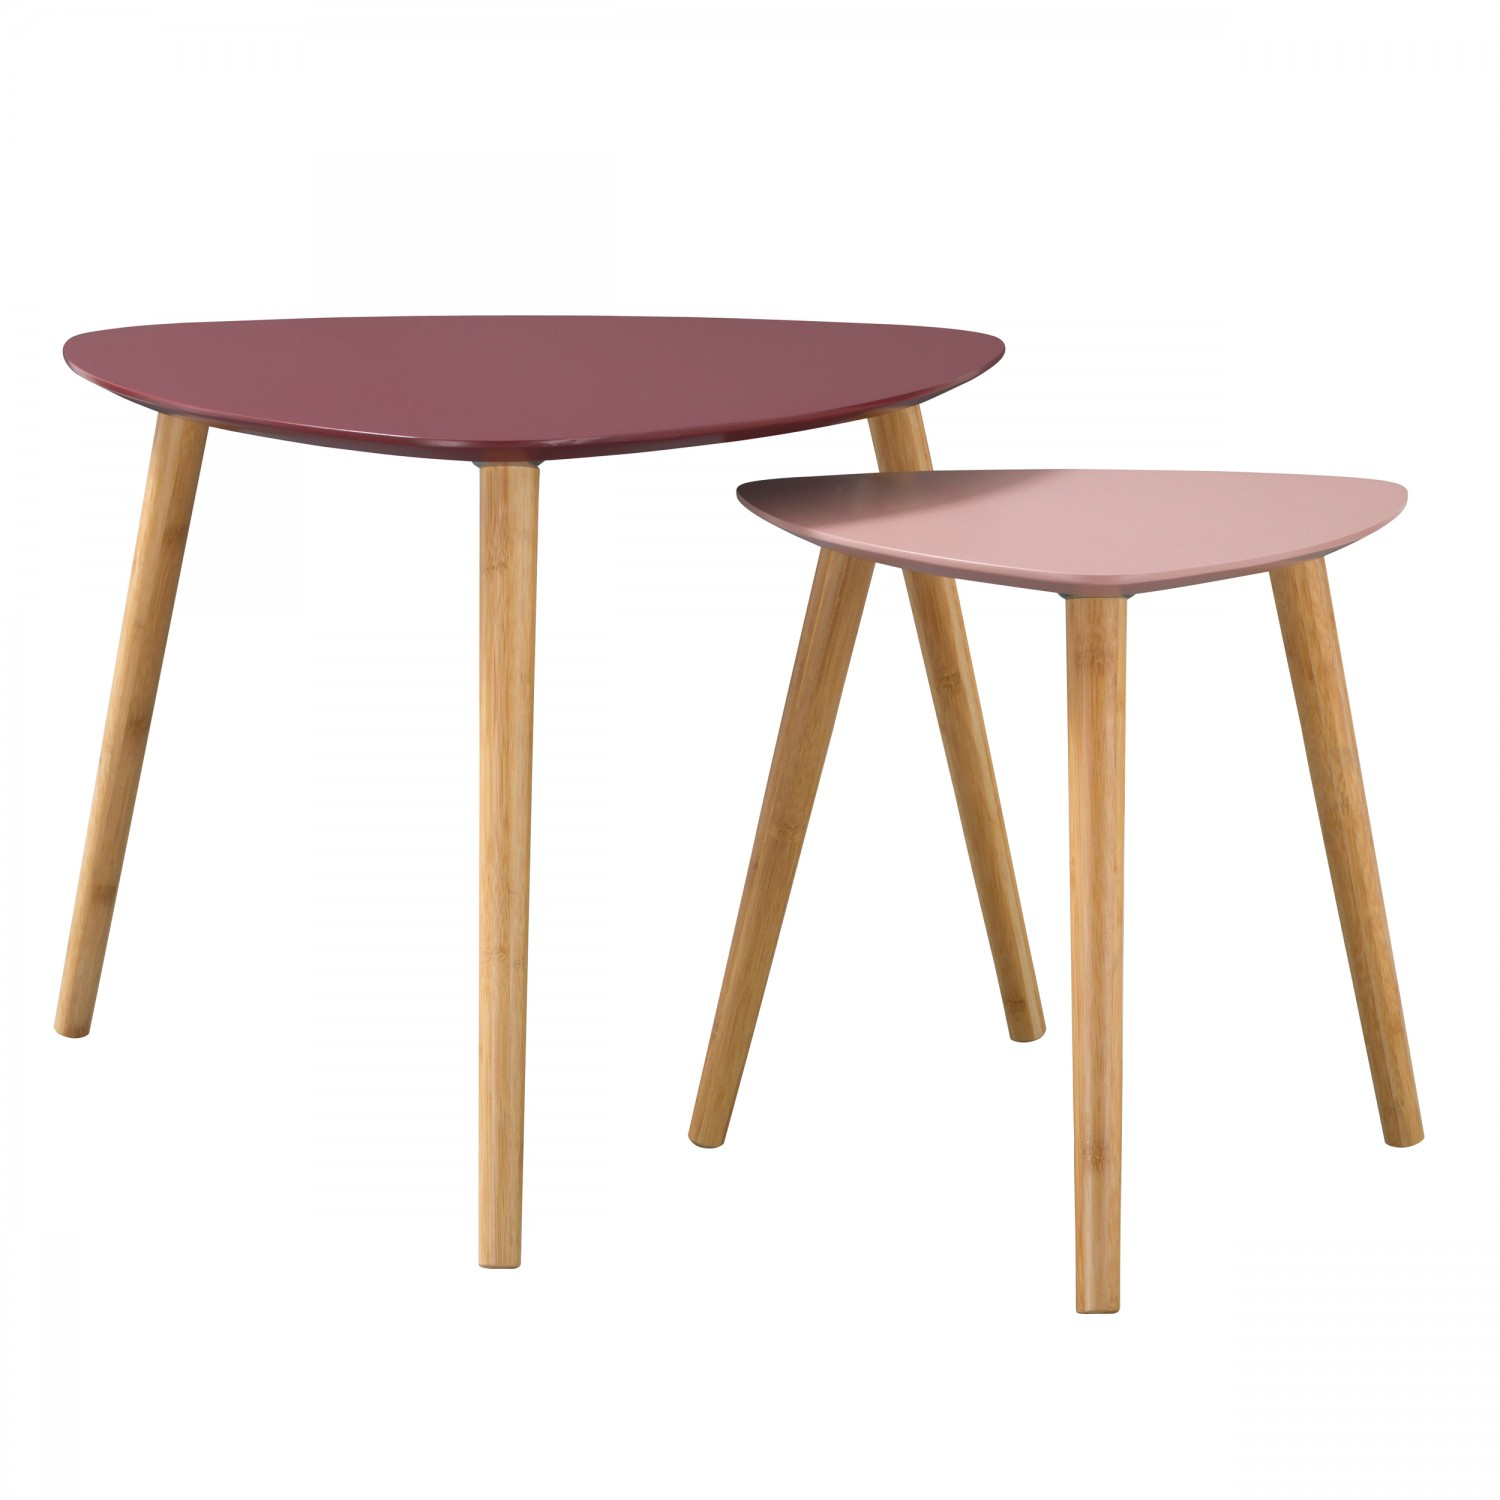 Table basse Anja bicolore rose (Lot de 2)